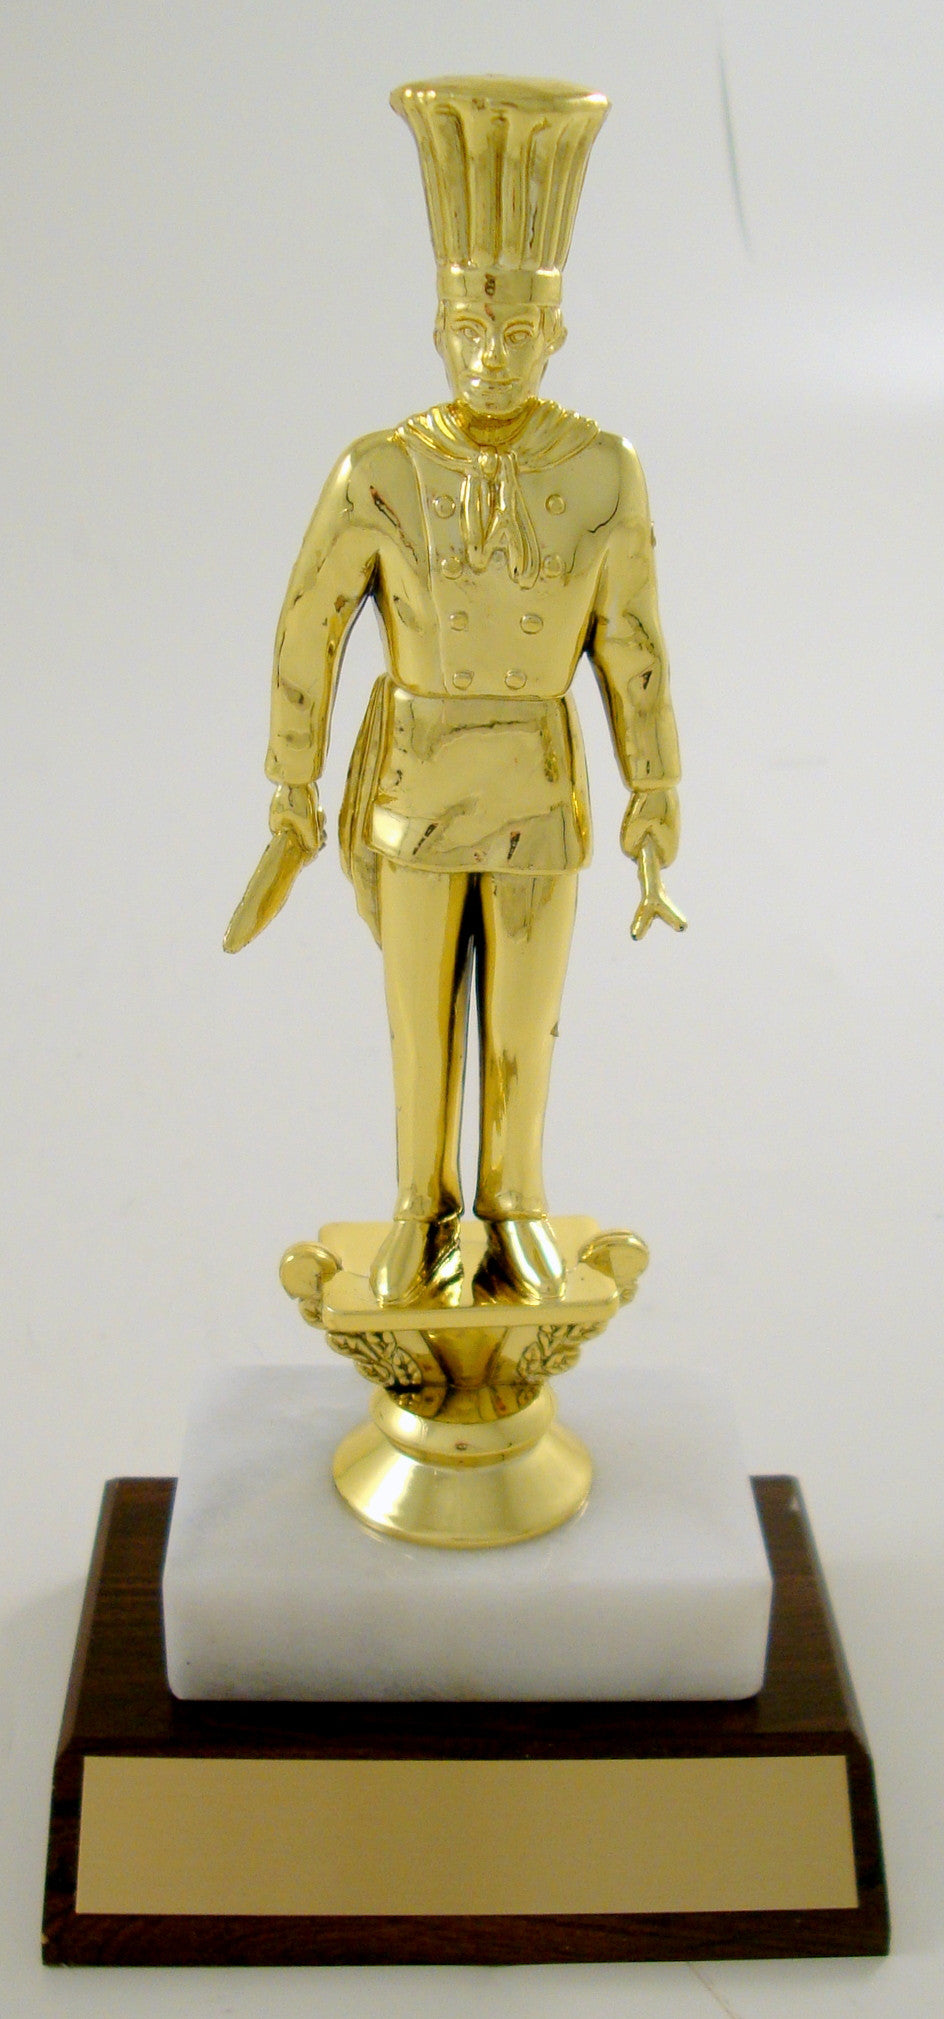 Chef Trophy Figure On Marble Base with Wood Slant-Trophies-Schoppy's Since 1921